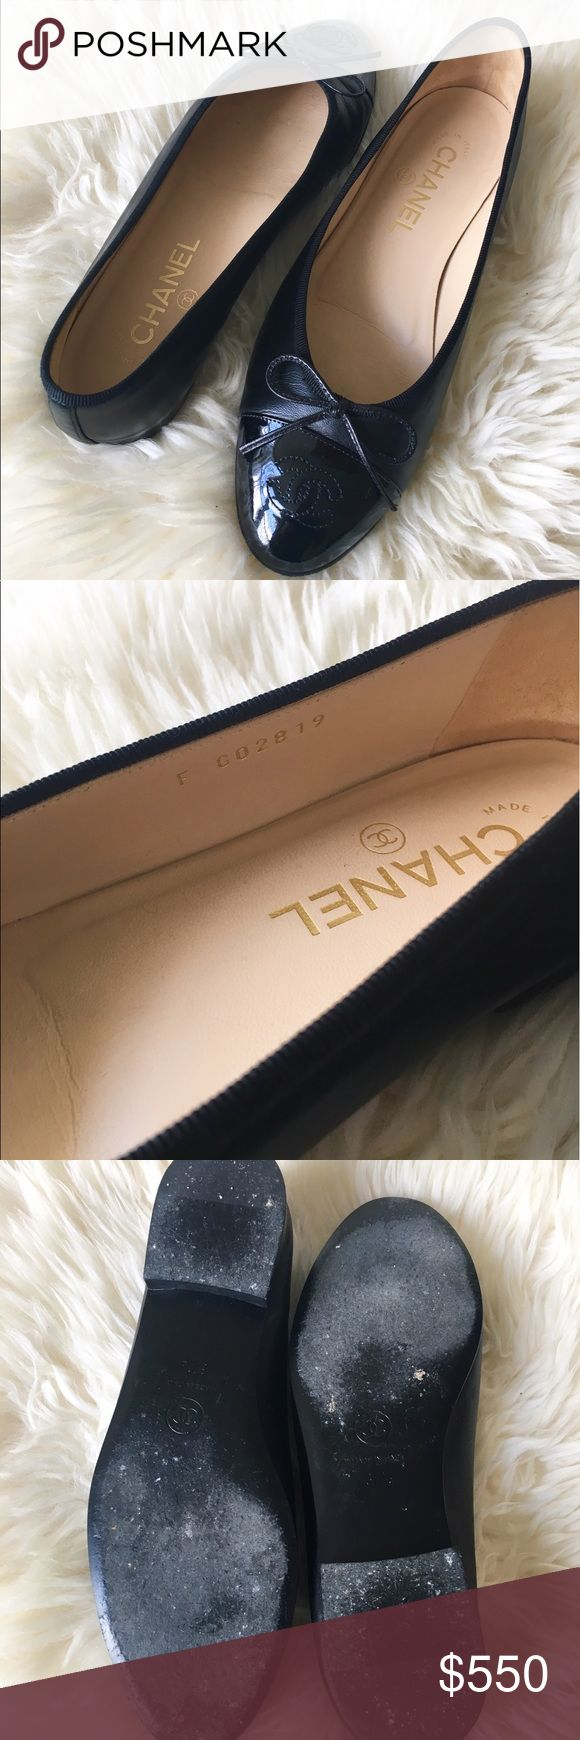 Chanel Ballerina Flats 100% authentic, Chanel Lambskin Flats. Used them a few times and are in excellent condition. When I didn't use them, they always remained in the box. These are technically a size 7.5 (37.5 Euro), but they fit size 7 feet. Dust bag and Chanel box included. CHANEL Shoes Flats & Loafers